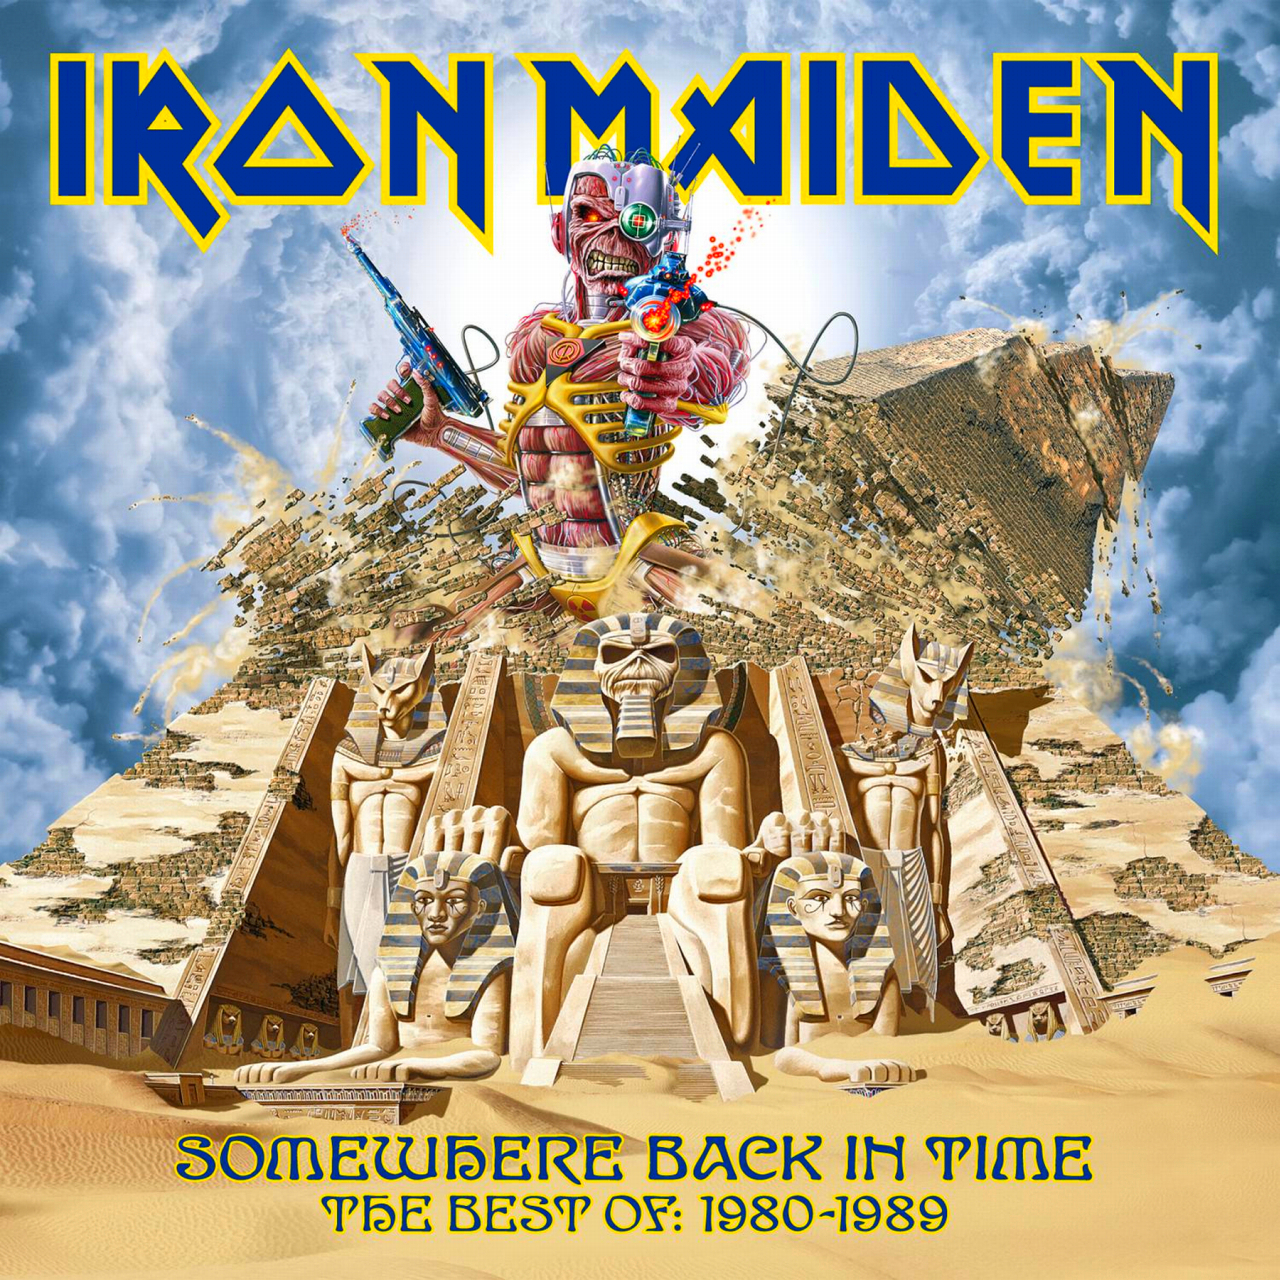 Somewhere Back In Time Iron Maiden Blood Brothers Colombia